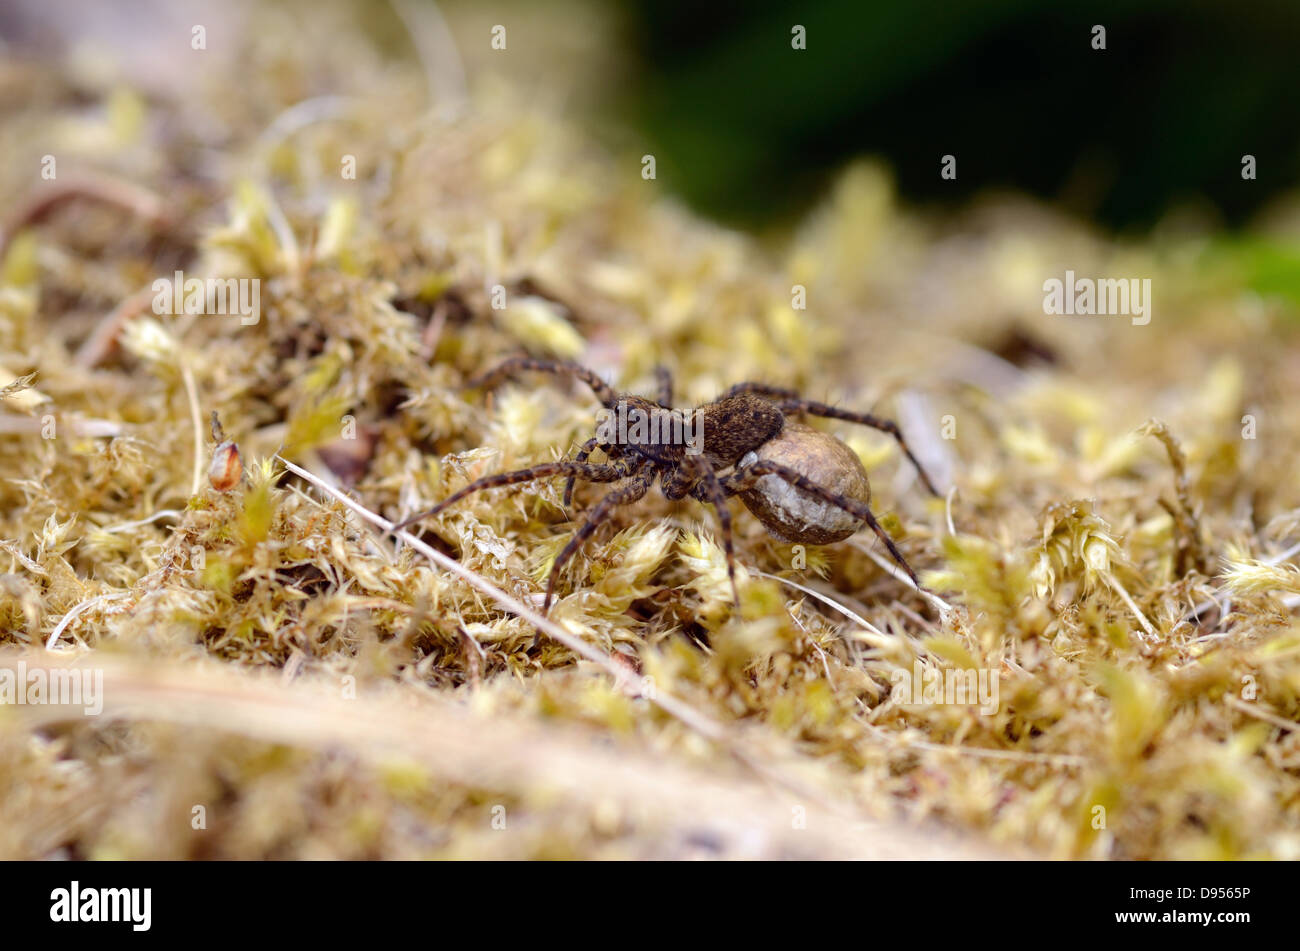 Pardosa amentata or Spotted Wolf spider with egg sack - Stock Image